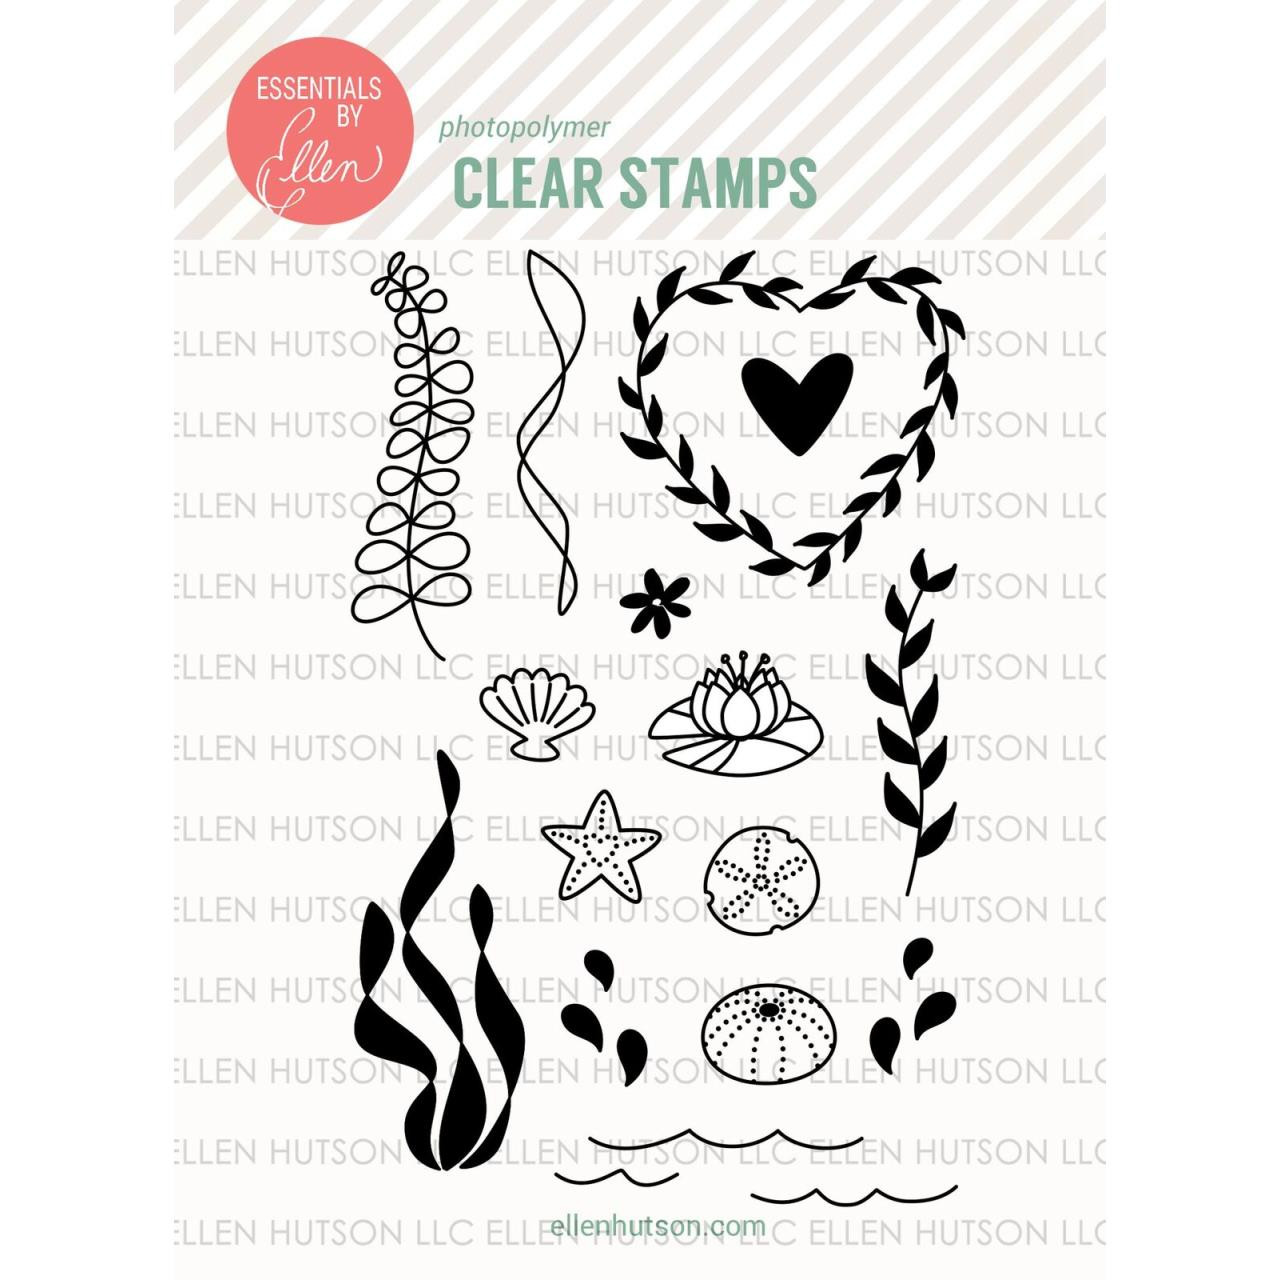 Essentials By Ellen Clear Stamps, Otter Ware By Julie Ebersole -